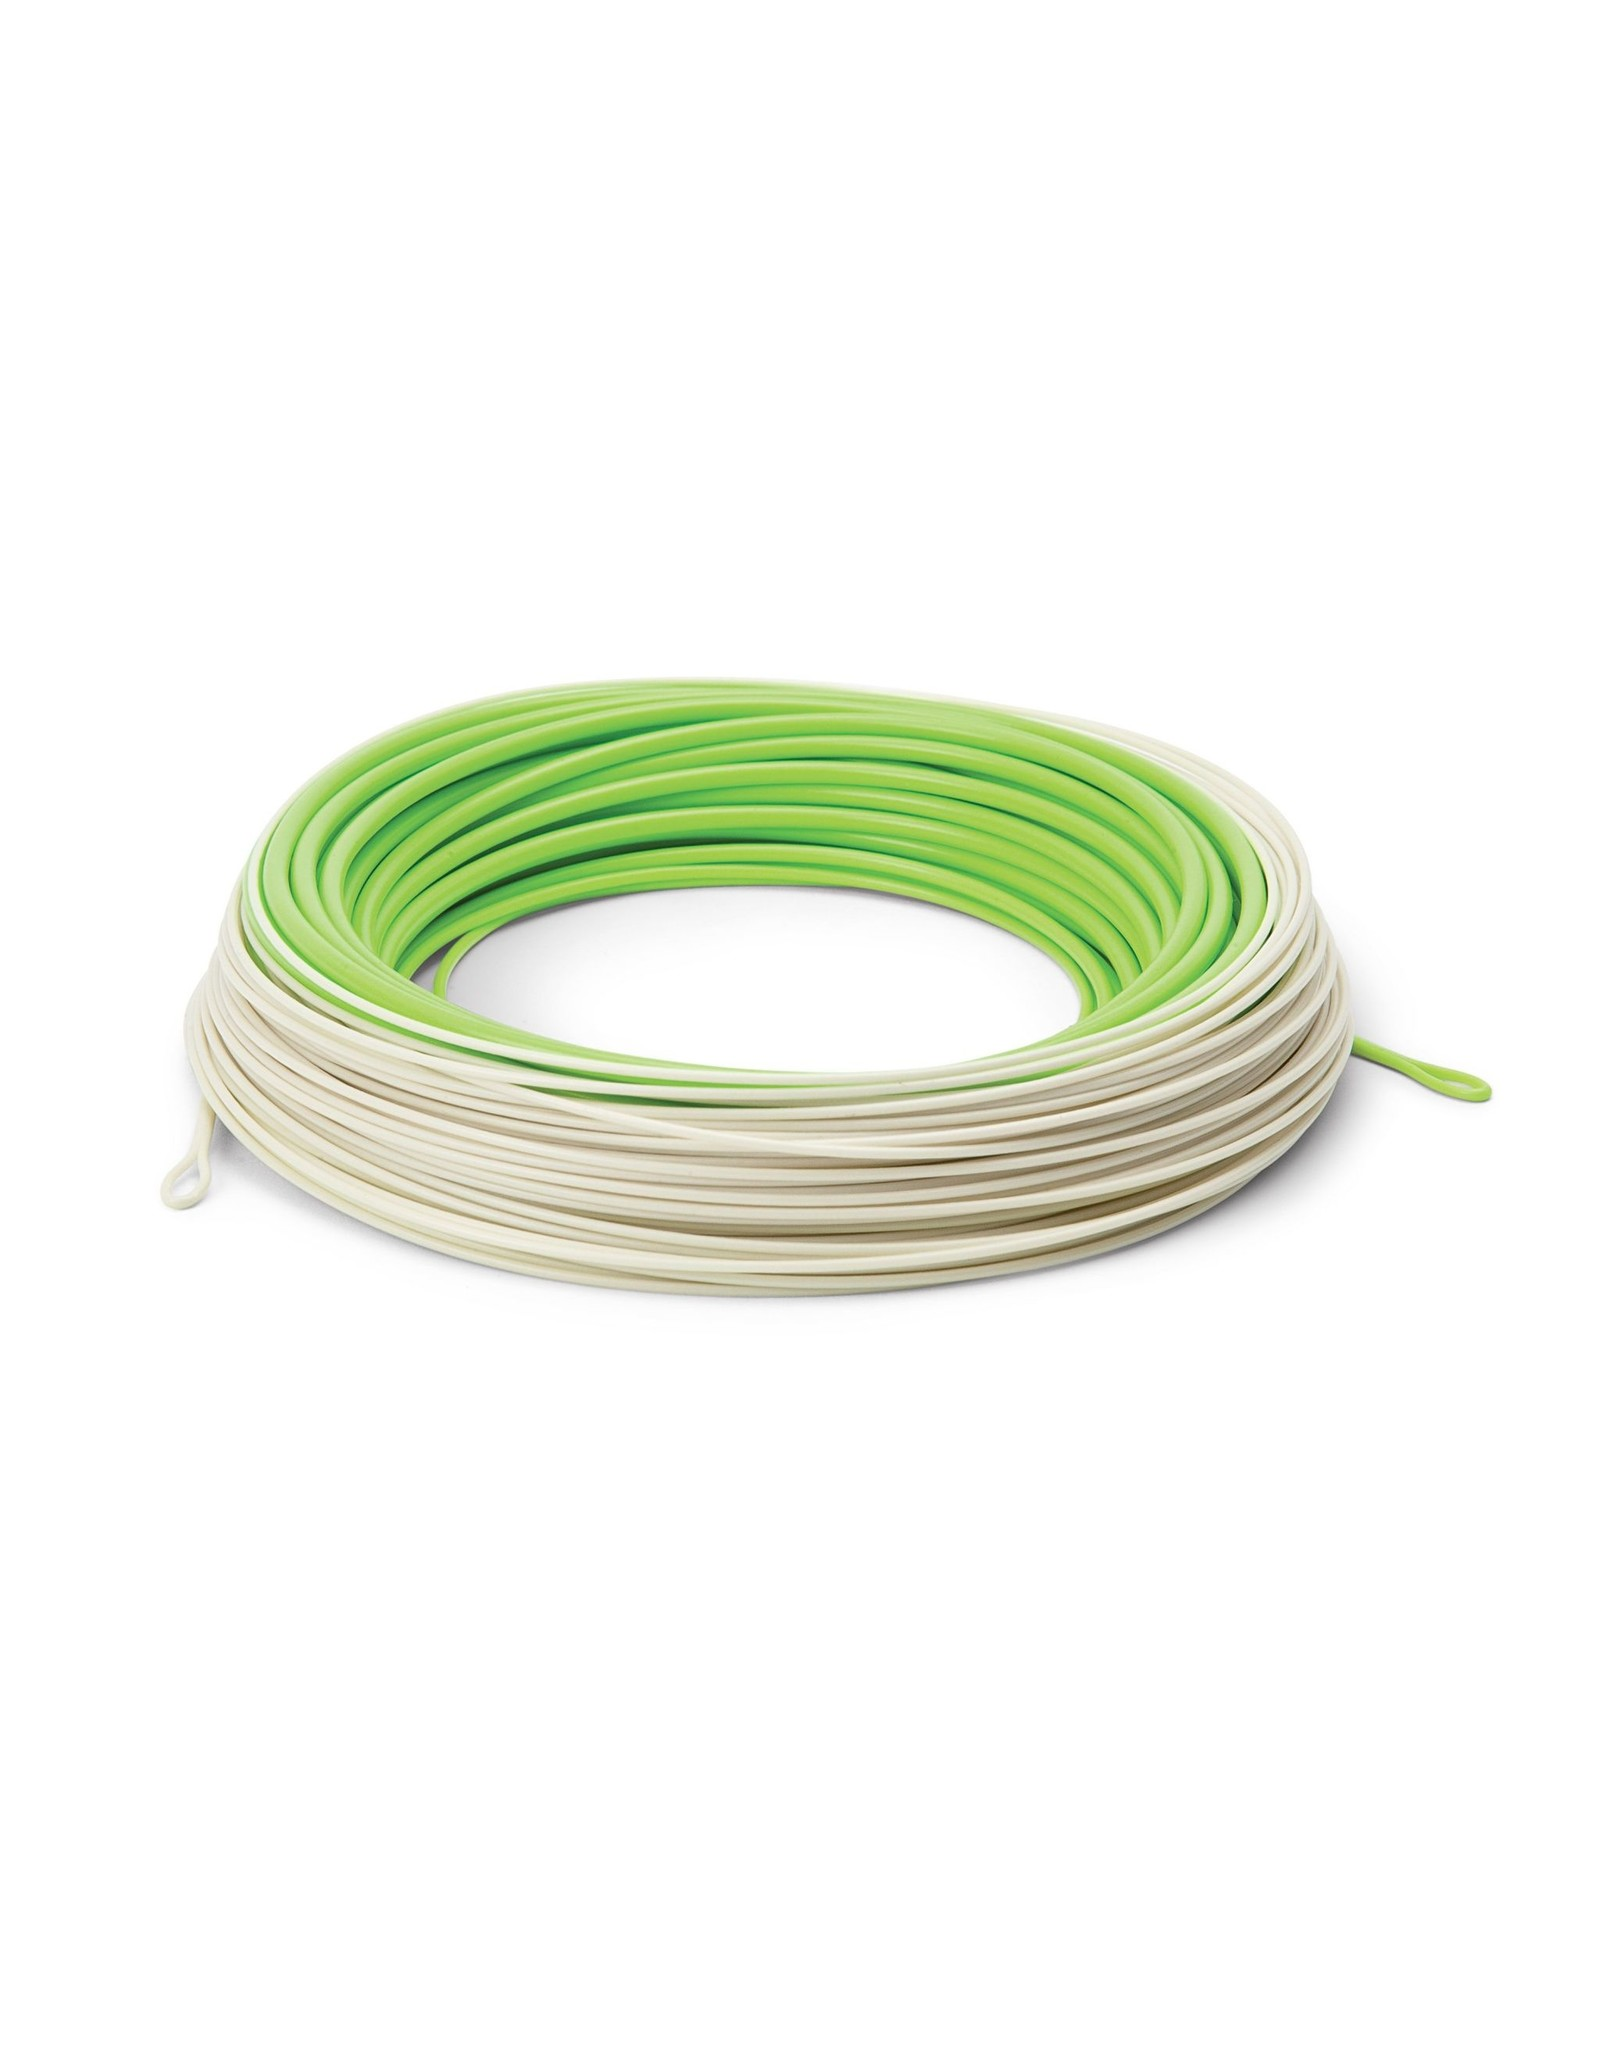 Cortland Line Cortland Compact Switch Fly Line